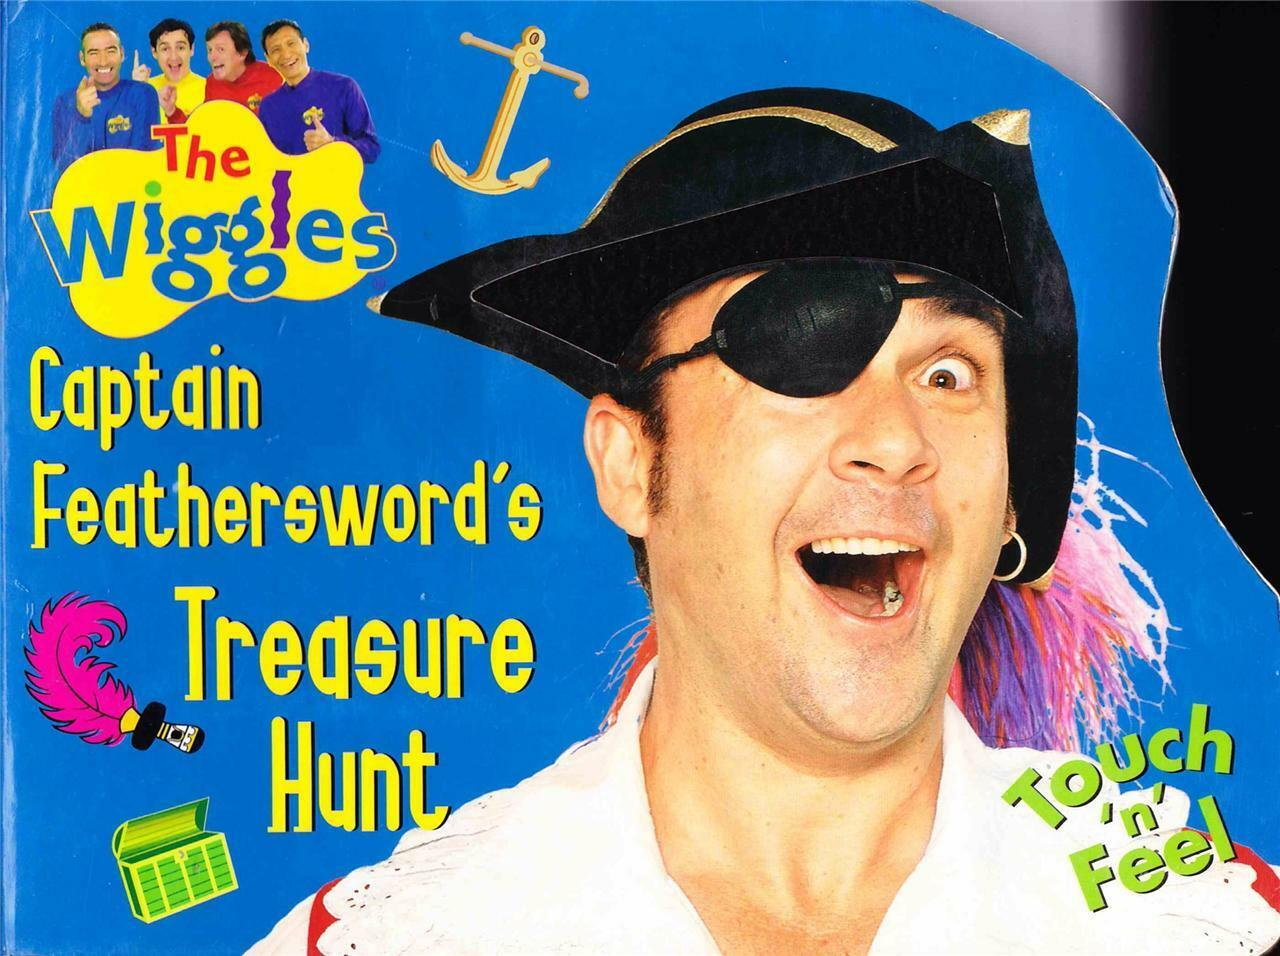 Captain Feathersword's Treasure Hunt